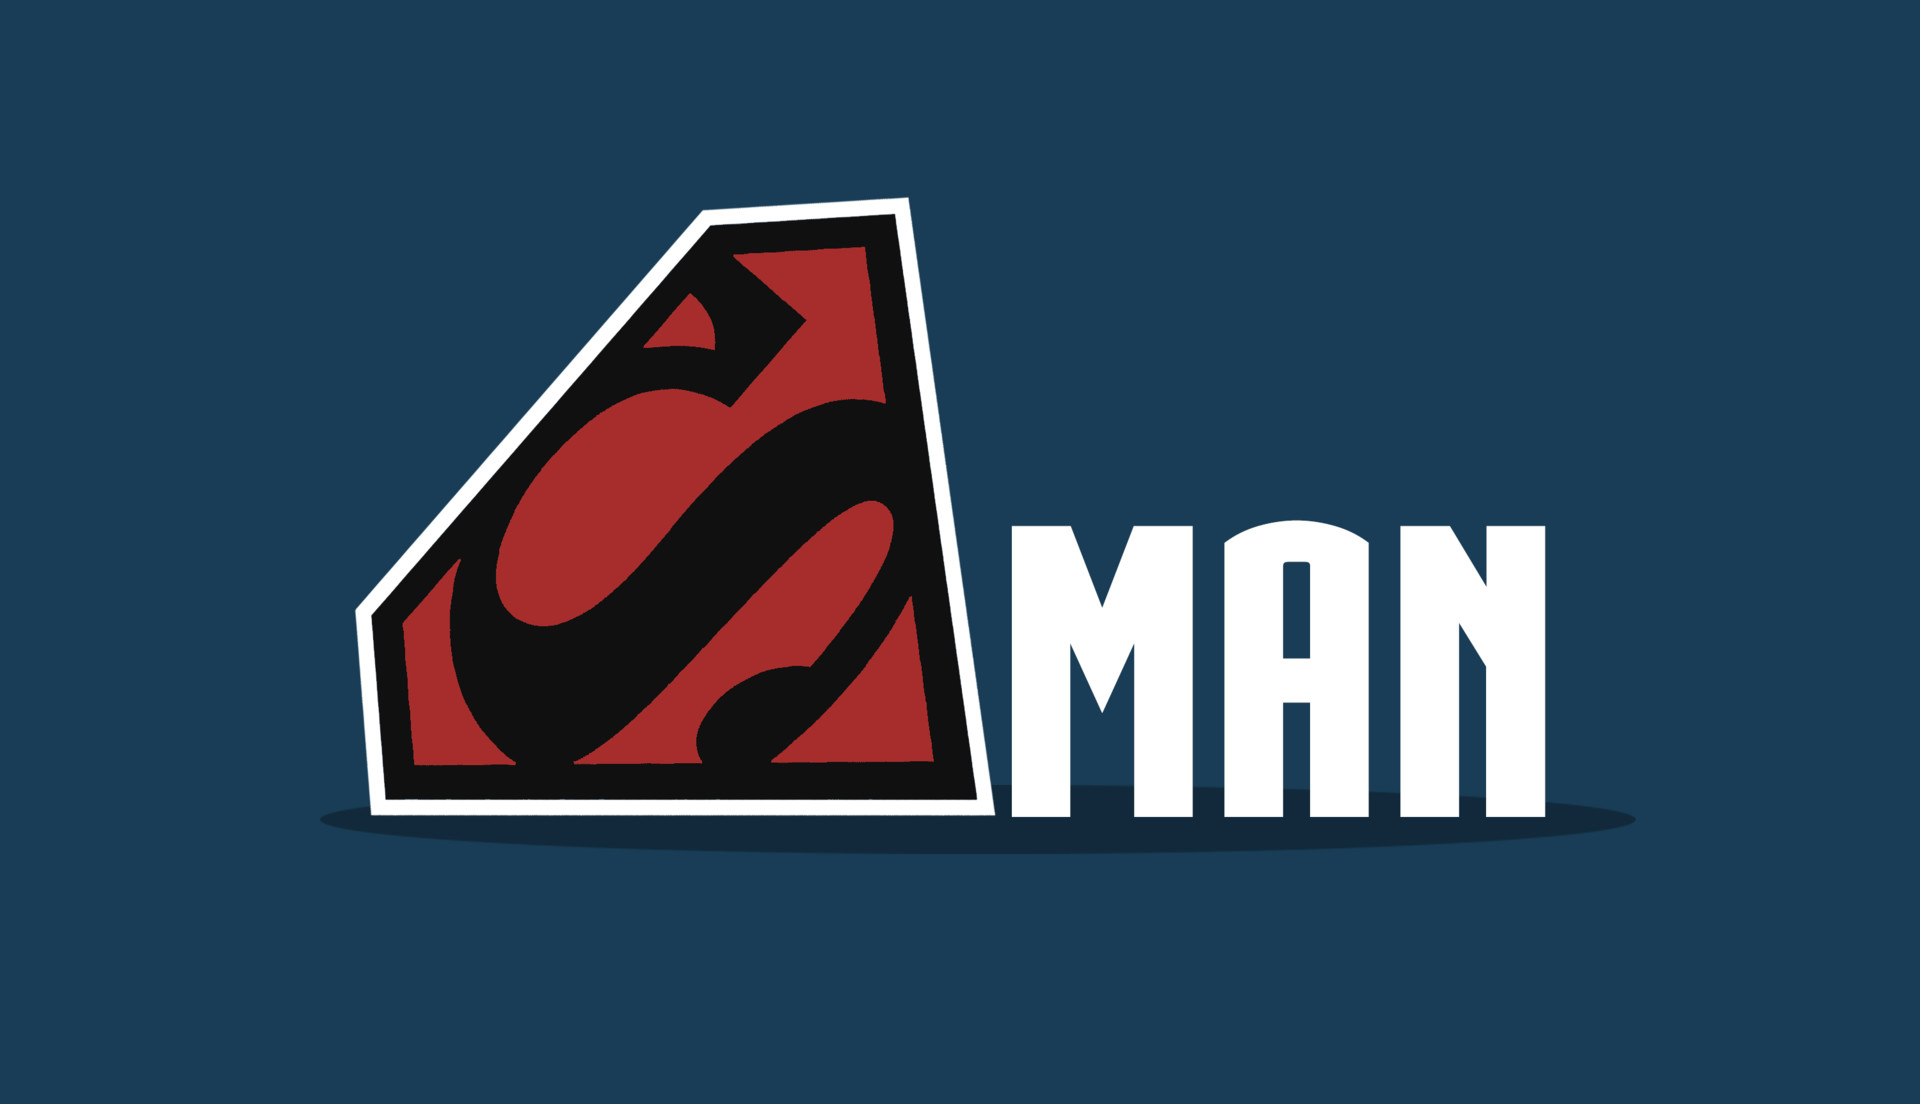 Superman Logo Minimalism HD Superheroes 4k Wallpapers Images